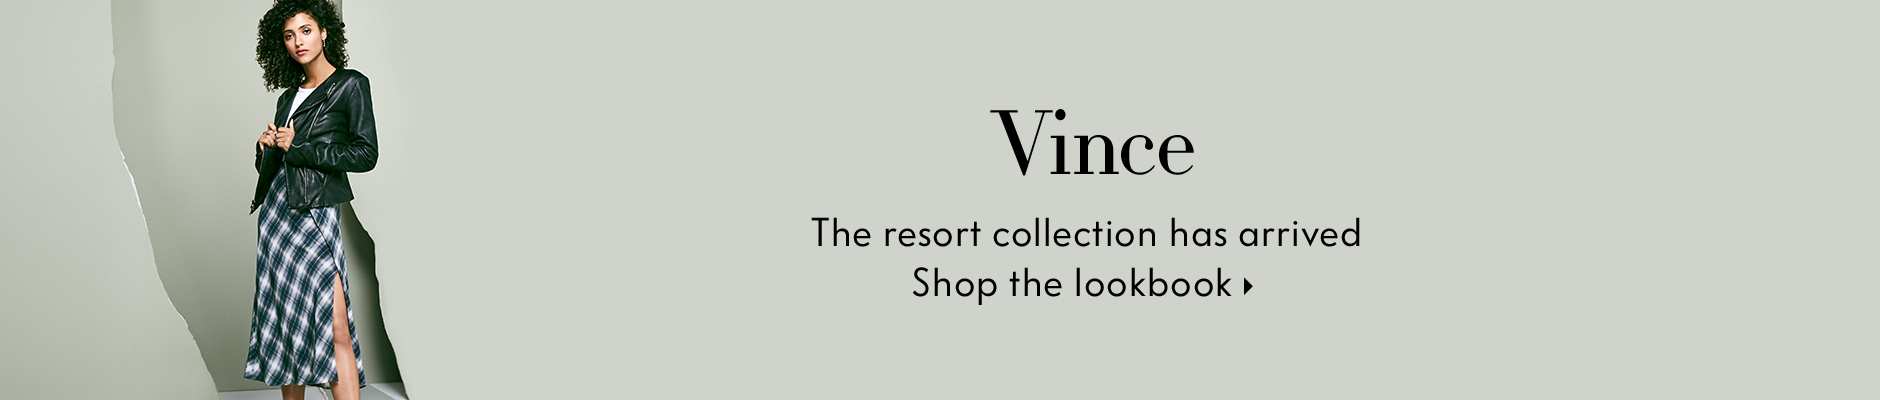 Vince Resort Lookbook